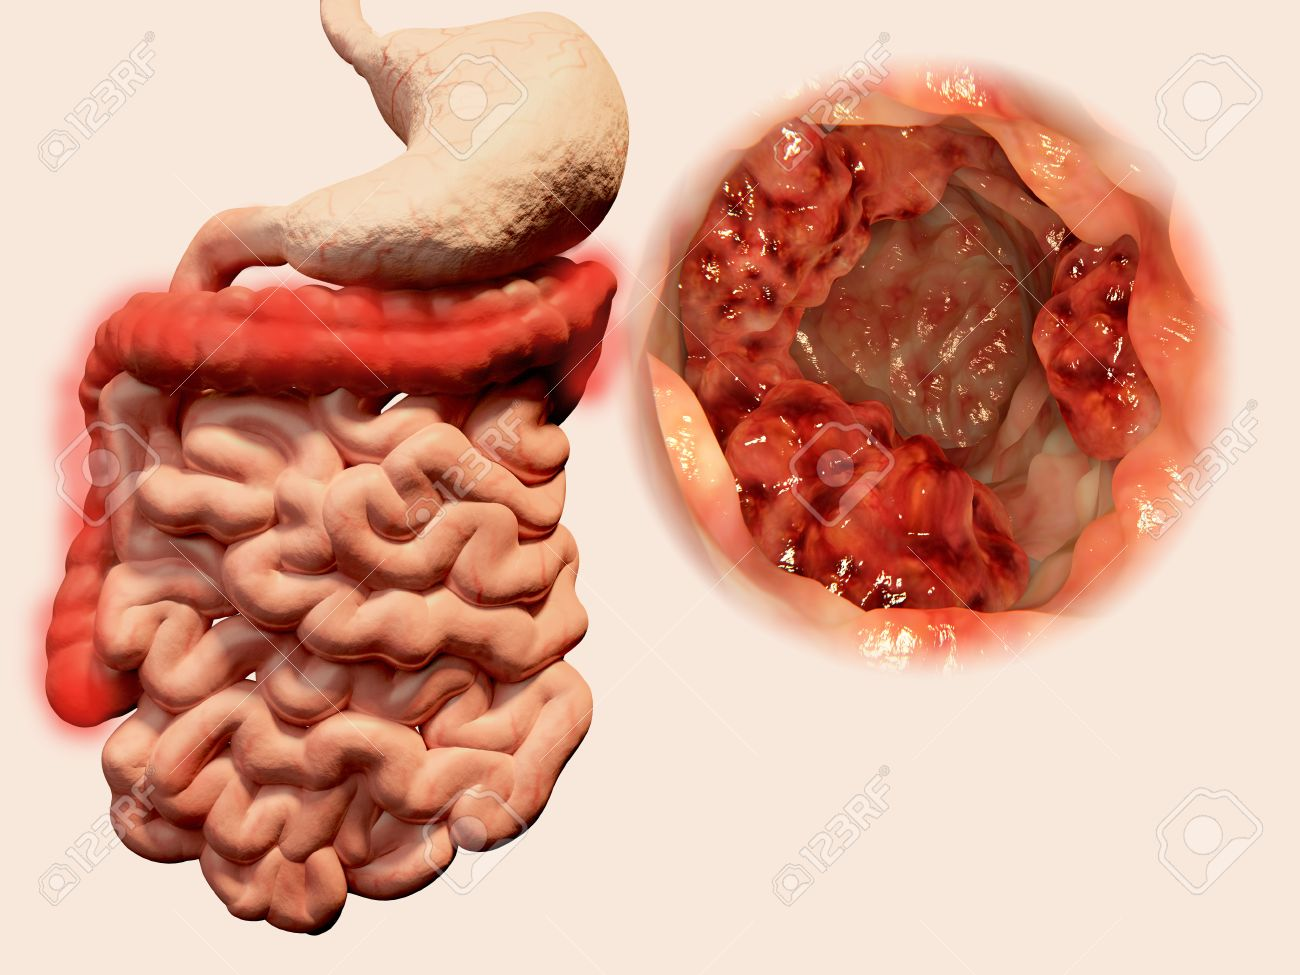 Occurrence Of Malign Tumors In The Intestines Stock Photo Picture